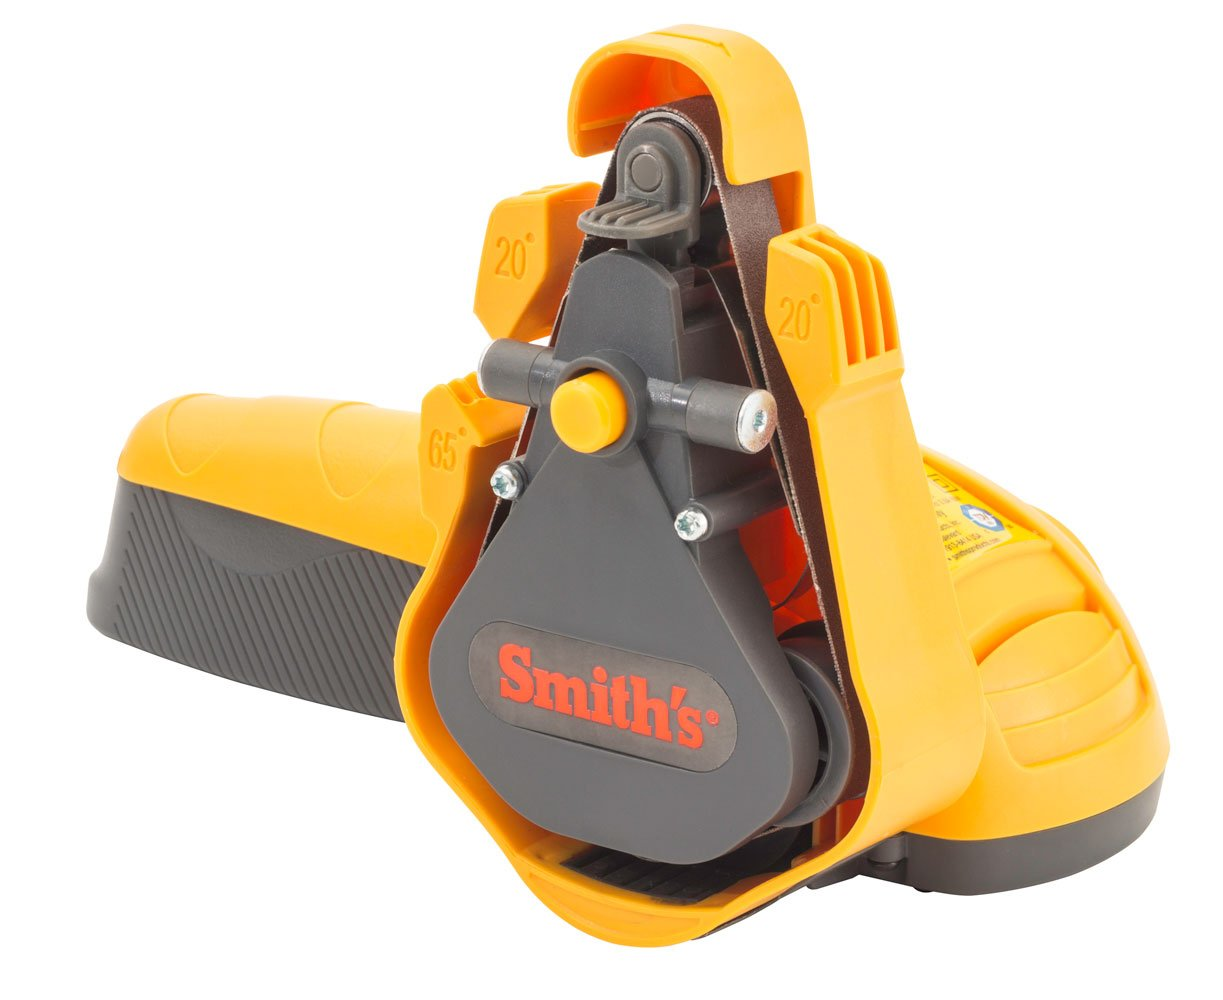 Smith's 50933 Corded Knife & Tool Sharpener